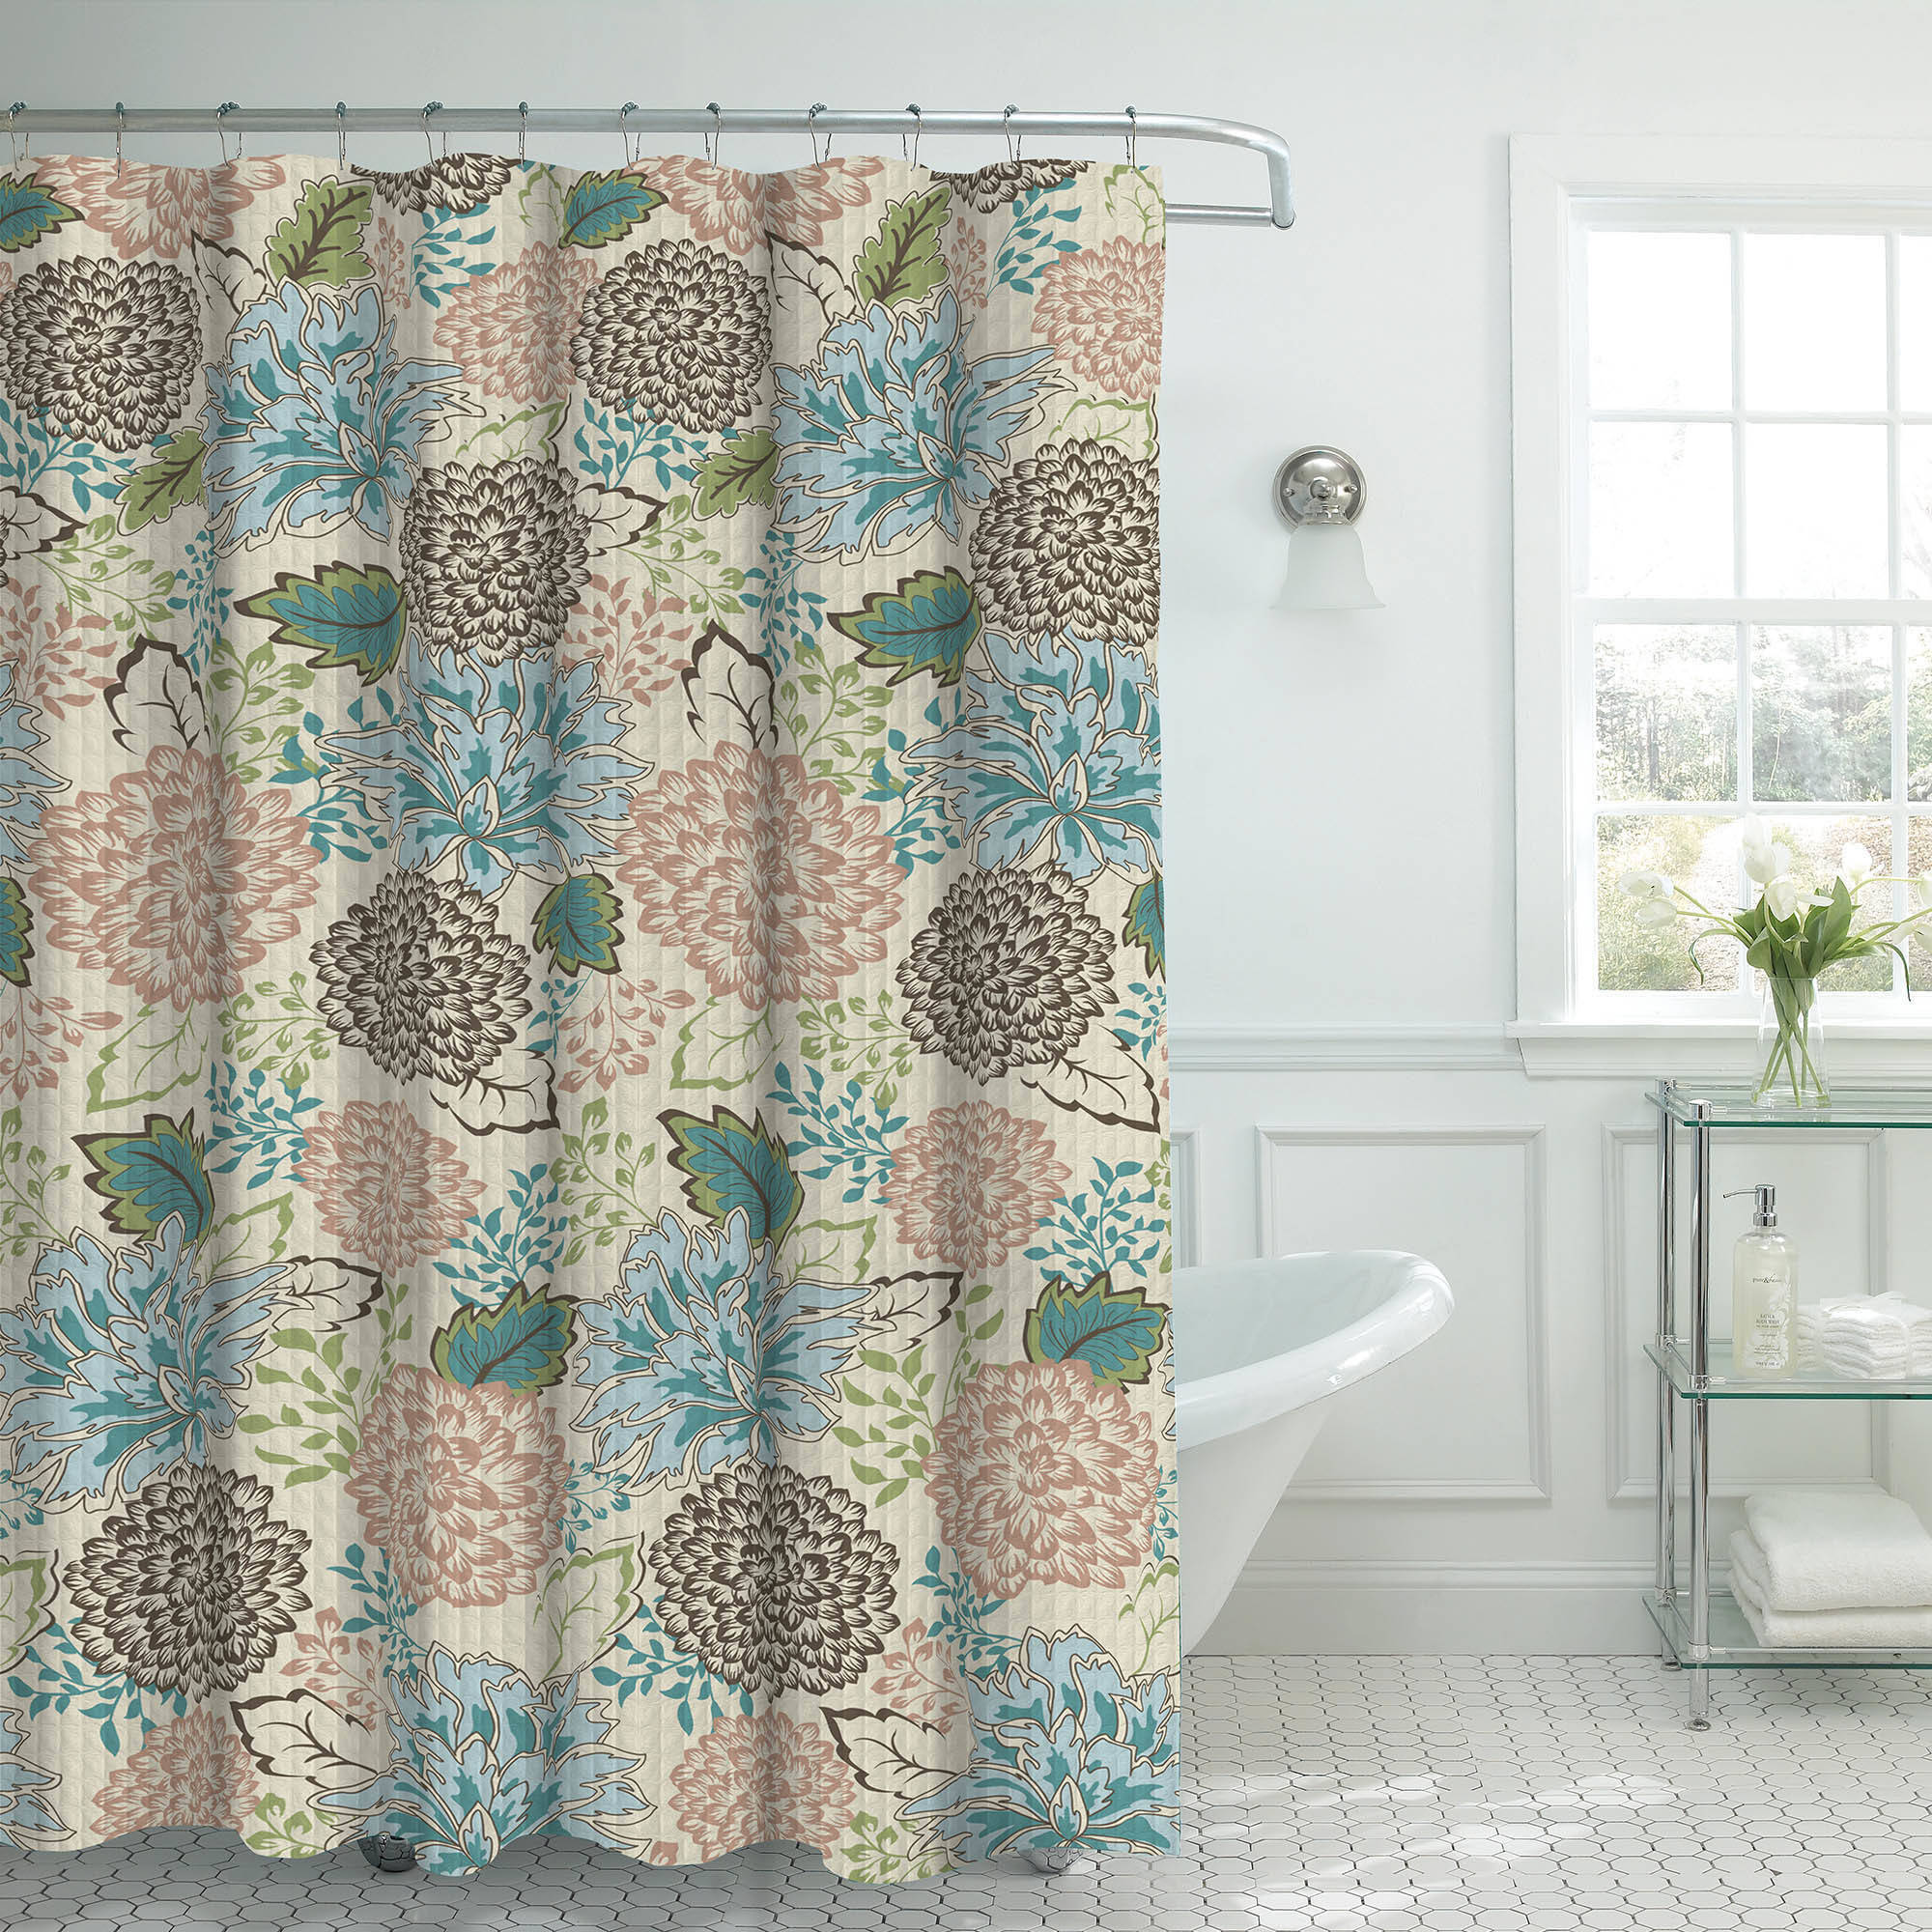 Bounce Comfort Oxford Weave Textured 13-Piece Shower Curtain Set with Metal Roller Hooks, Sonrie Berber